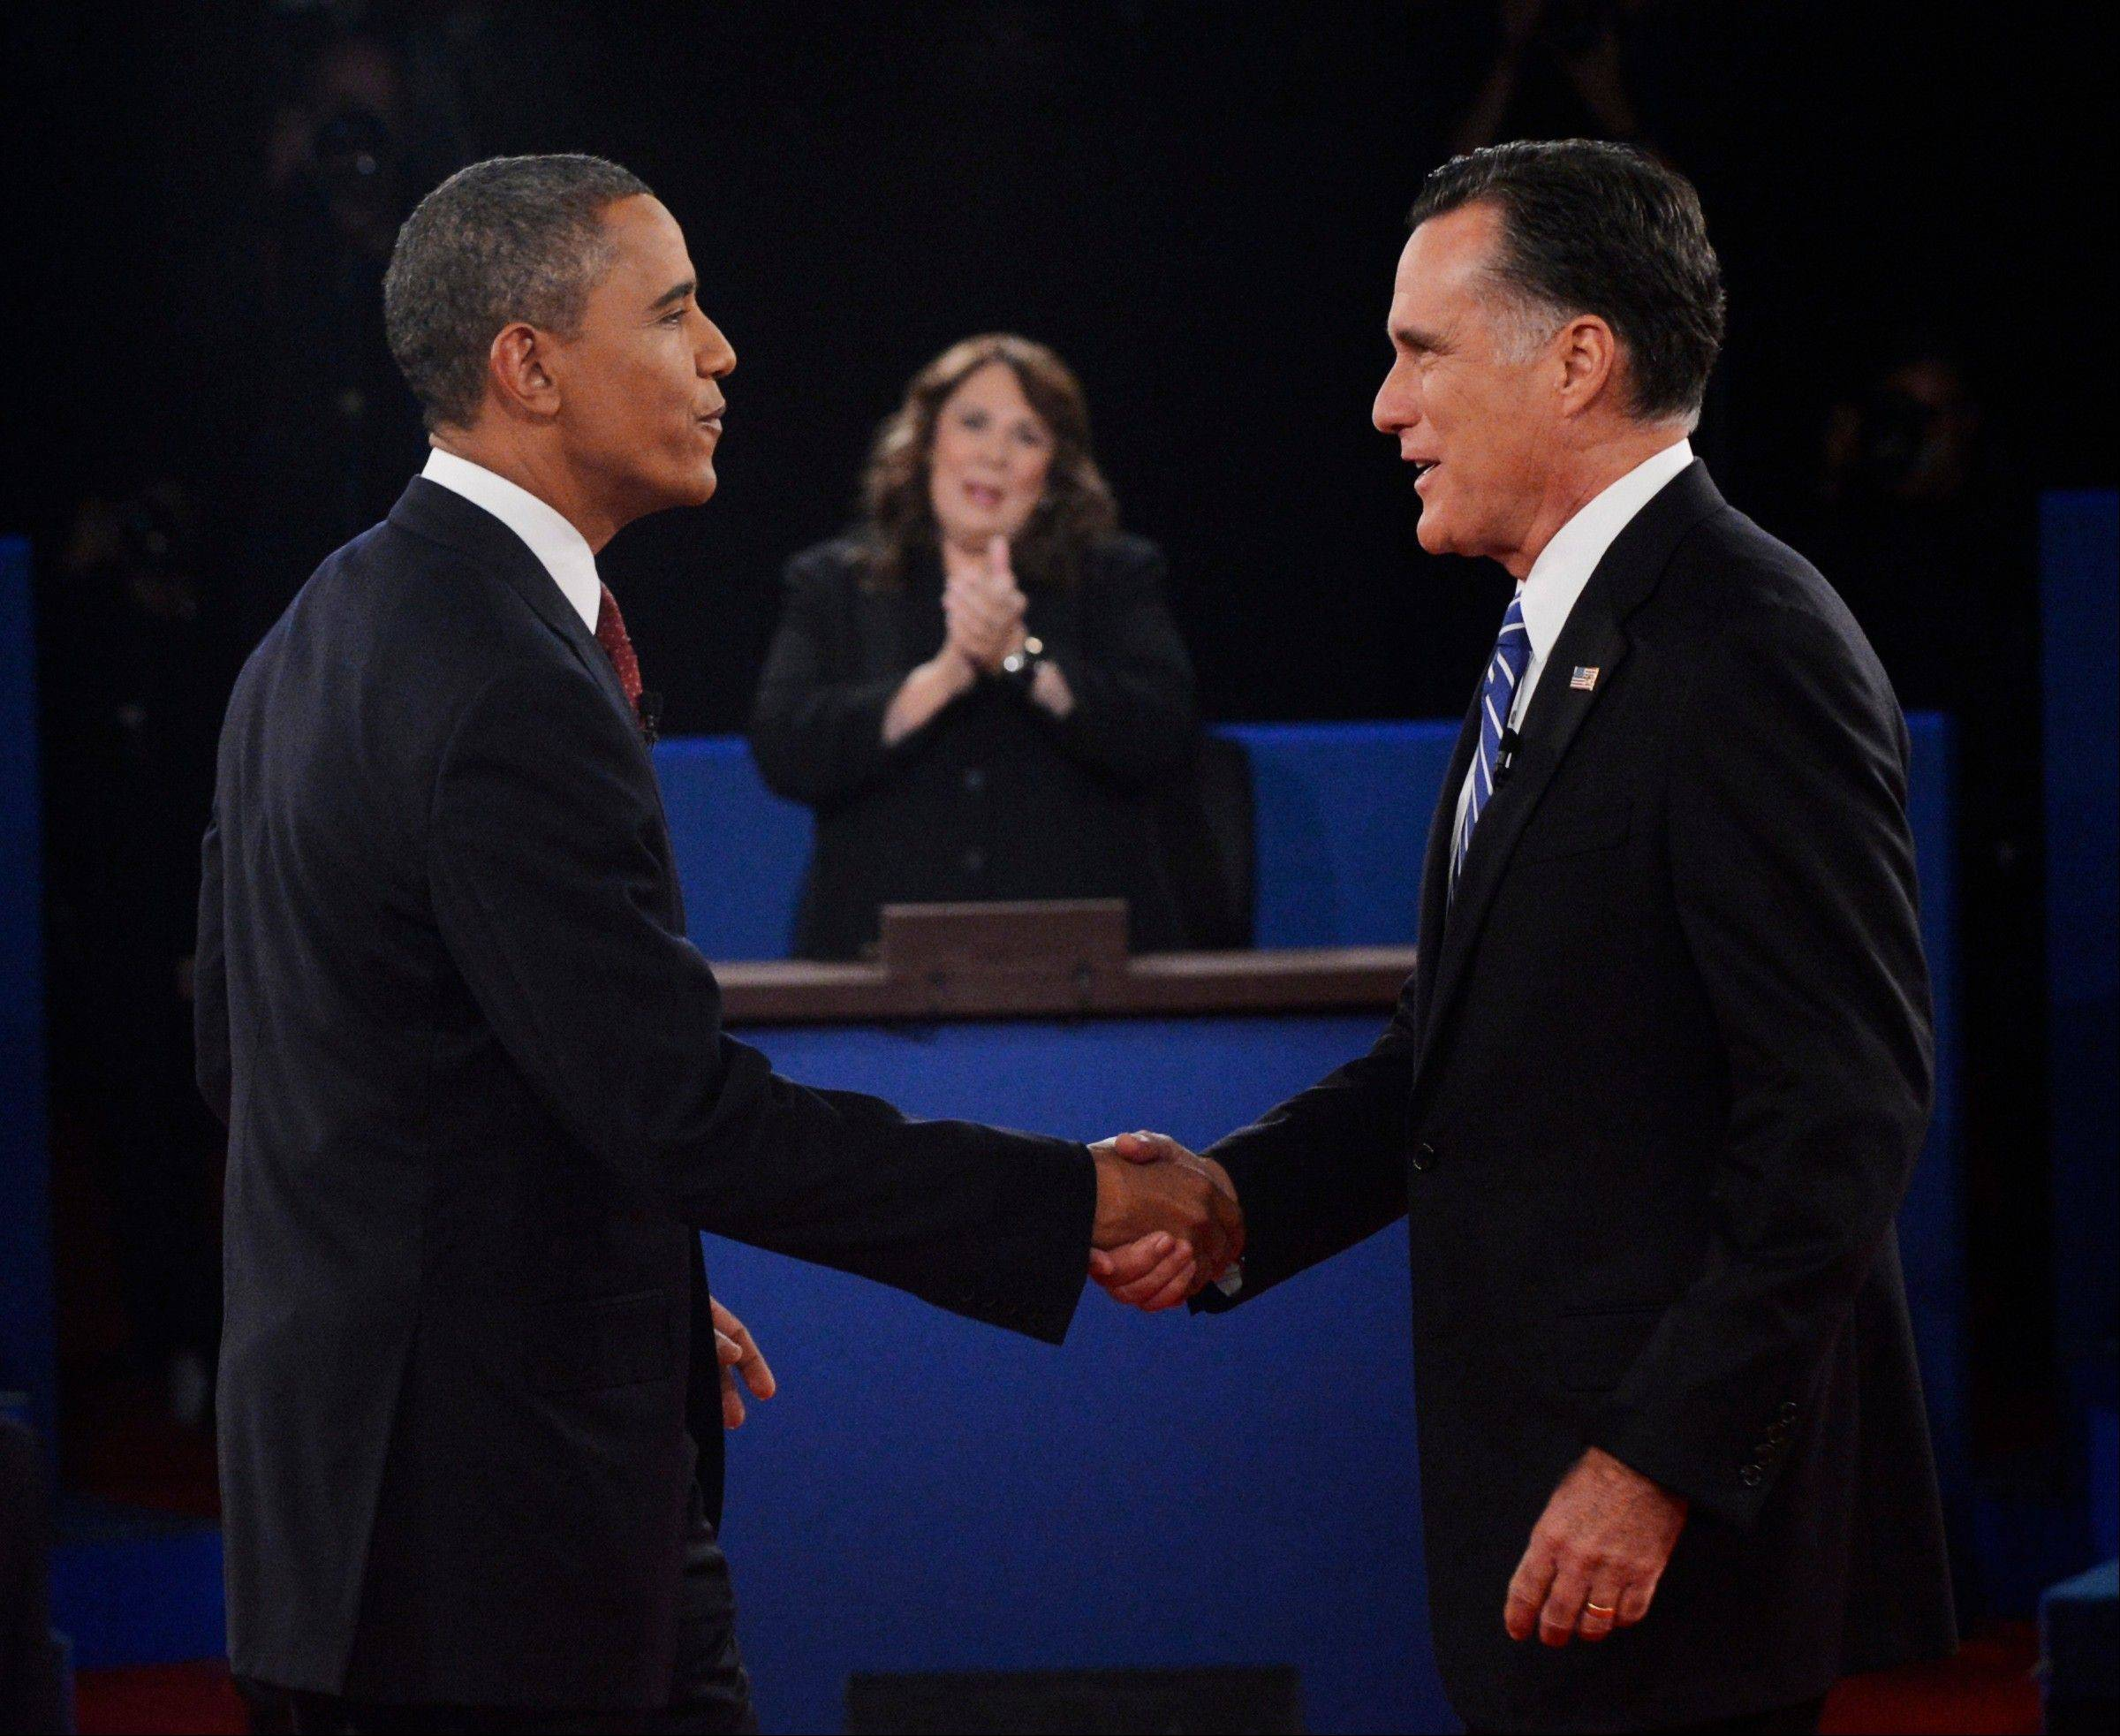 Moderator Candy Crowley, center, applauds as President Barack Obama, left, shakes hands with Republican presidential nominee Mitt Romney during the second presidential debate at Hofstra University, Tuesday, Oct. 16, 2012, in Hempstead, N.Y.